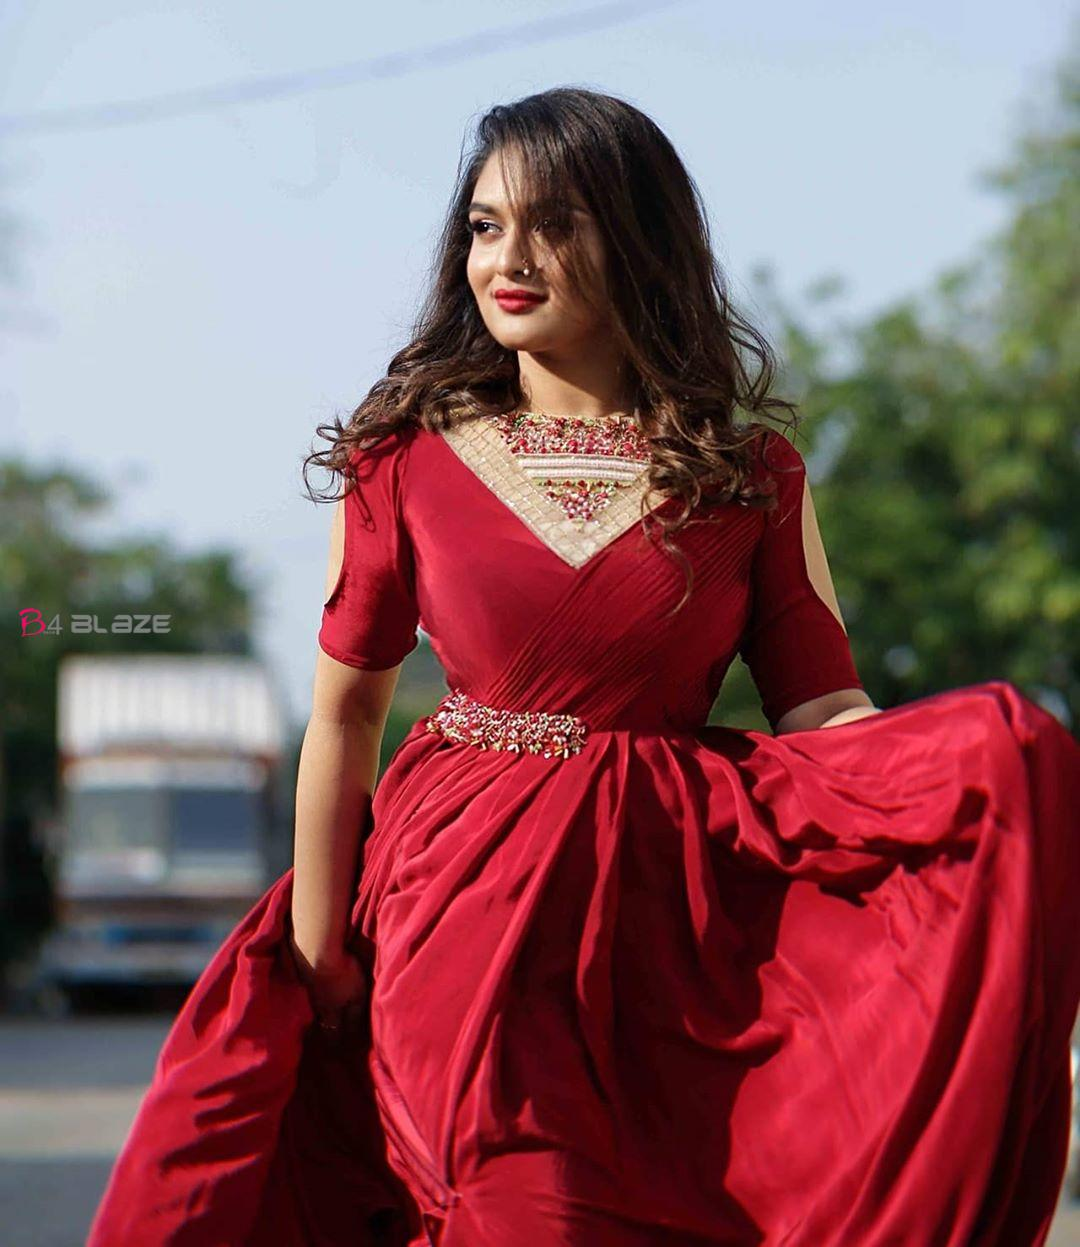 Prayaga Martin Photoshoot 1